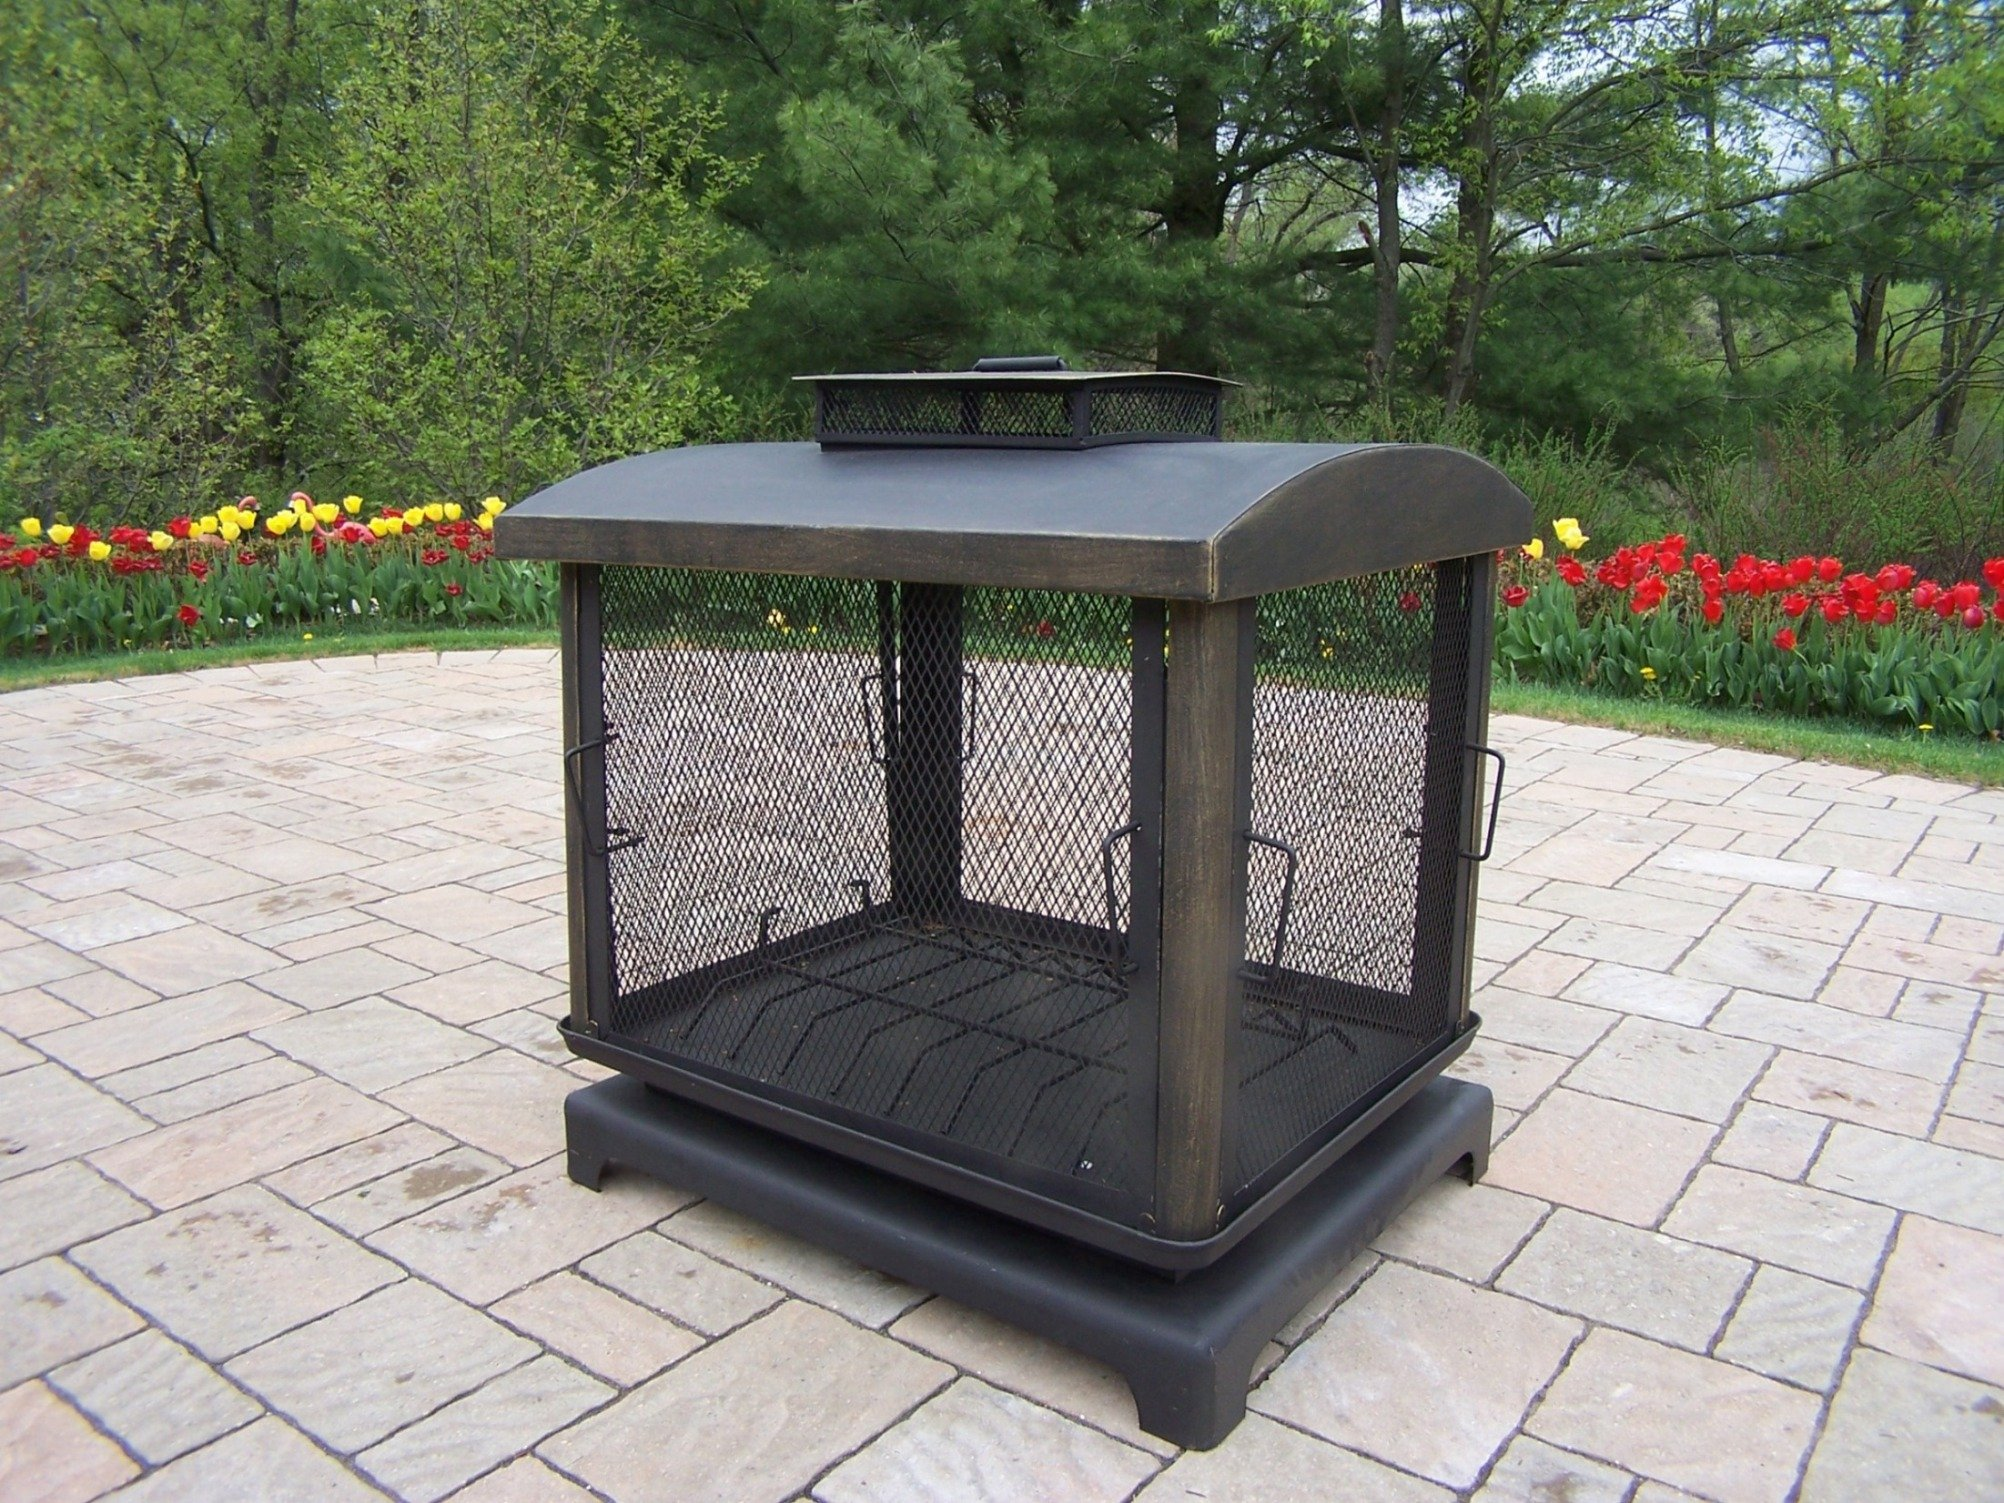 Oakland Living Outdoor Fire Place - Durable Copper and Cast Iron Construction Hardened Powder Coat Finish in Black for Years of Beauty Easy to Follow Assembly Instructions and Product Care Information - patio, fire-pits-outdoor-fireplaces, outdoor-decor - 914%2BPOLr4bL -